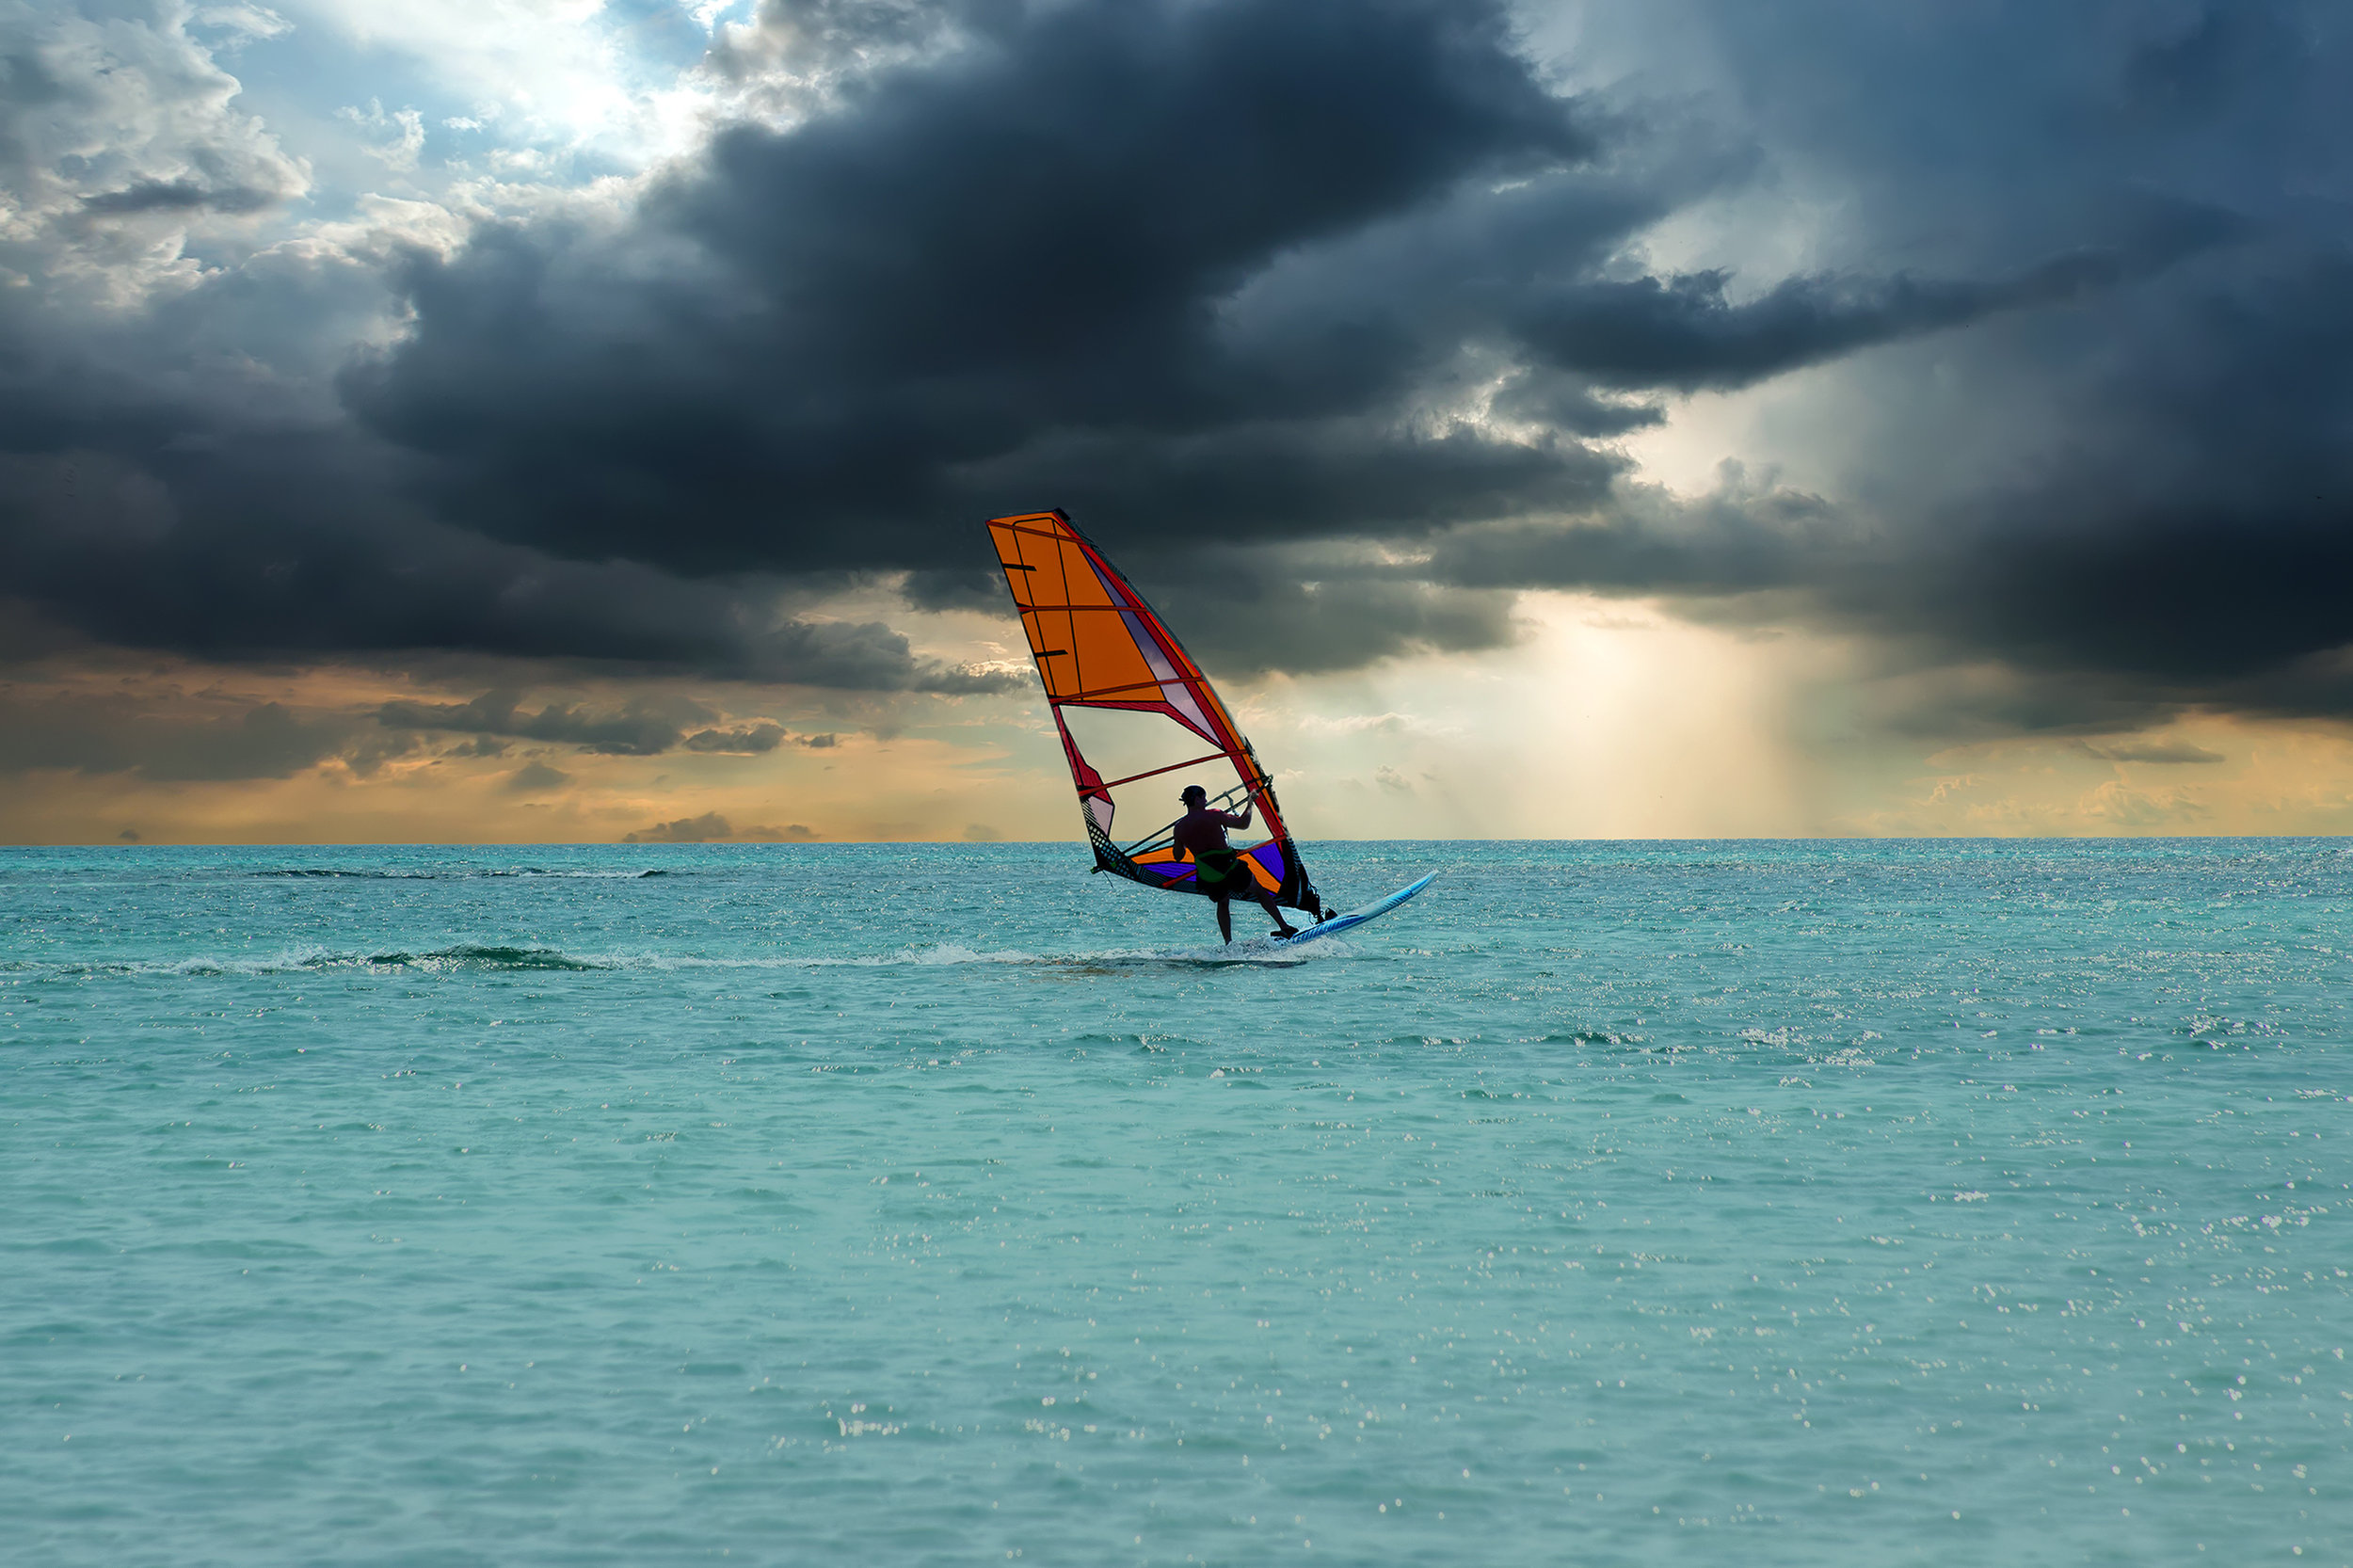 aruba_bigstock-Windsurfer-at-Aruba-island-on--170164529.jpg